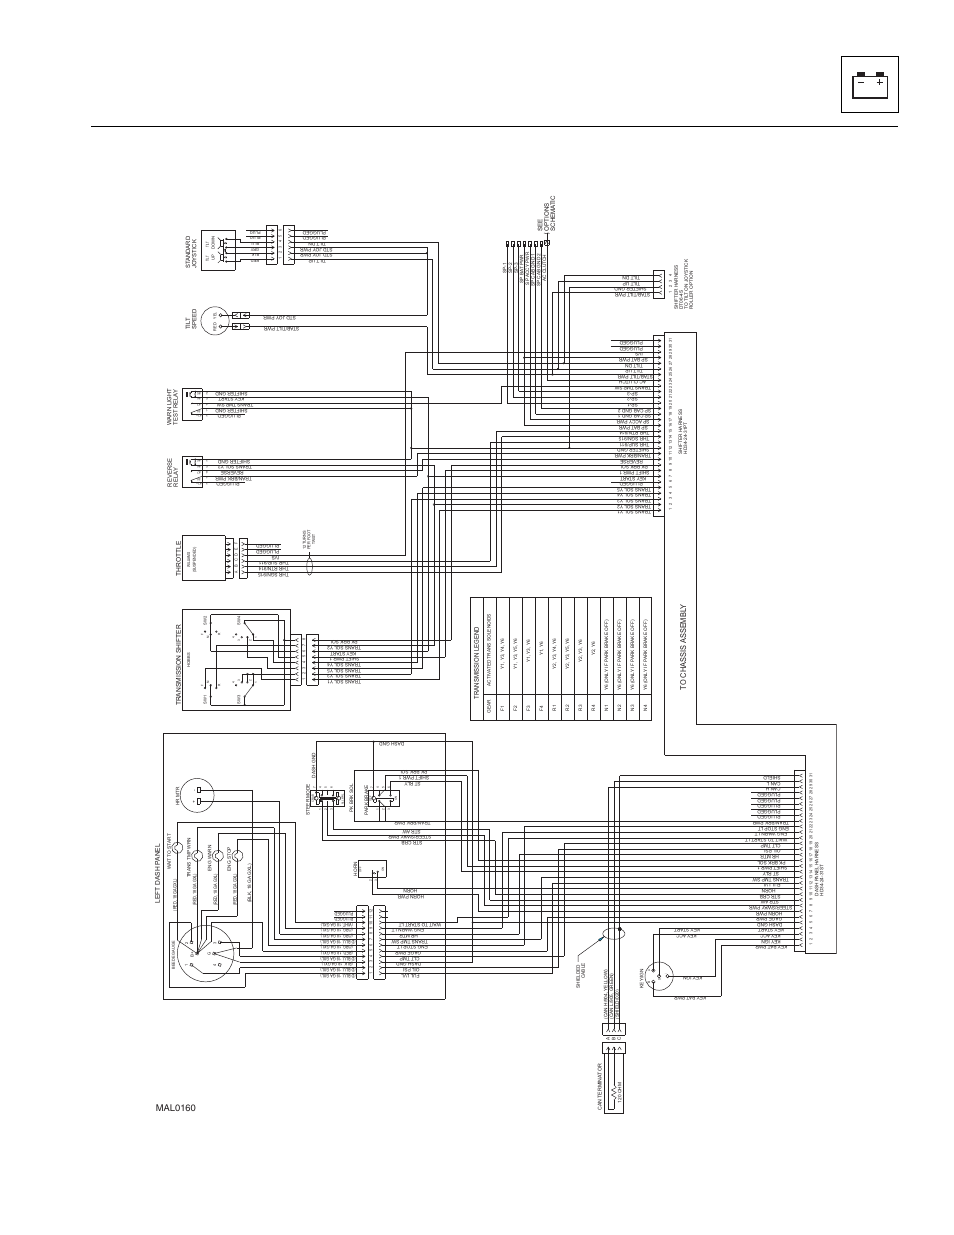 Jlg 2646e2 Scissor Lift Wiring Diagram Libraries For 1532 60g Libraryappealing Pictures Best Image G12